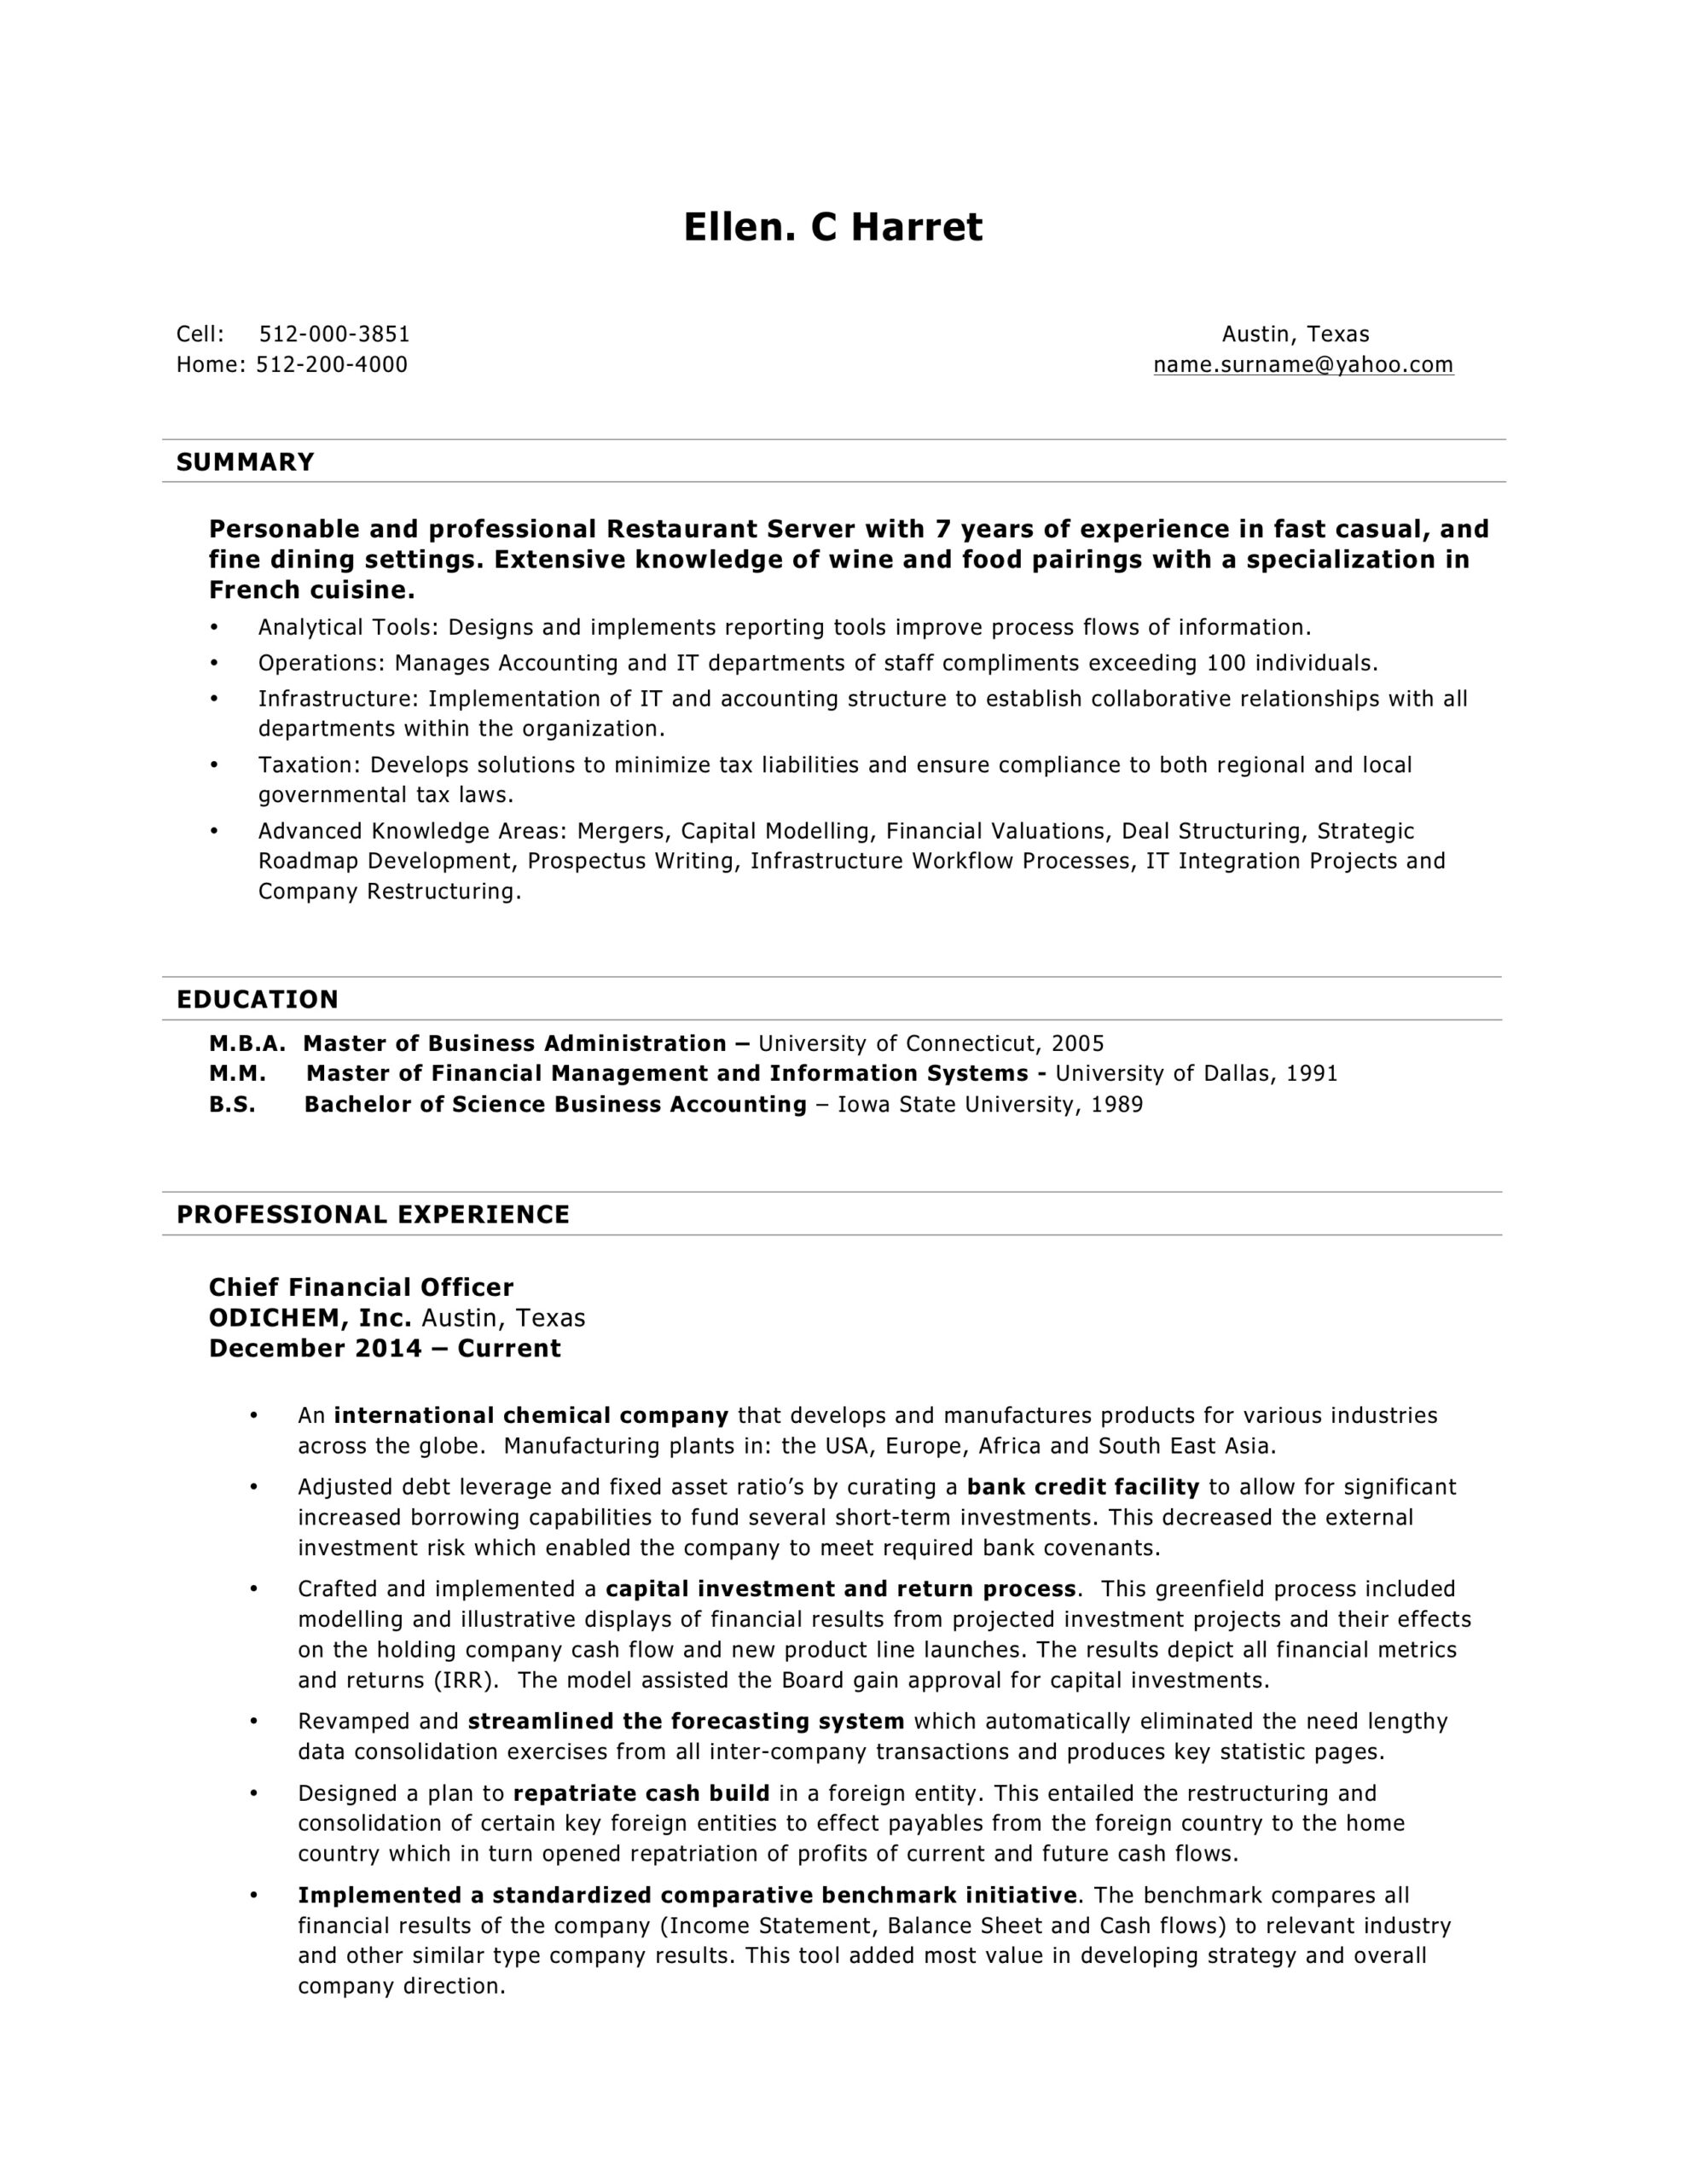 free word resume templates in ms professional experience sample server template should Resume Professional Experience Resume Sample